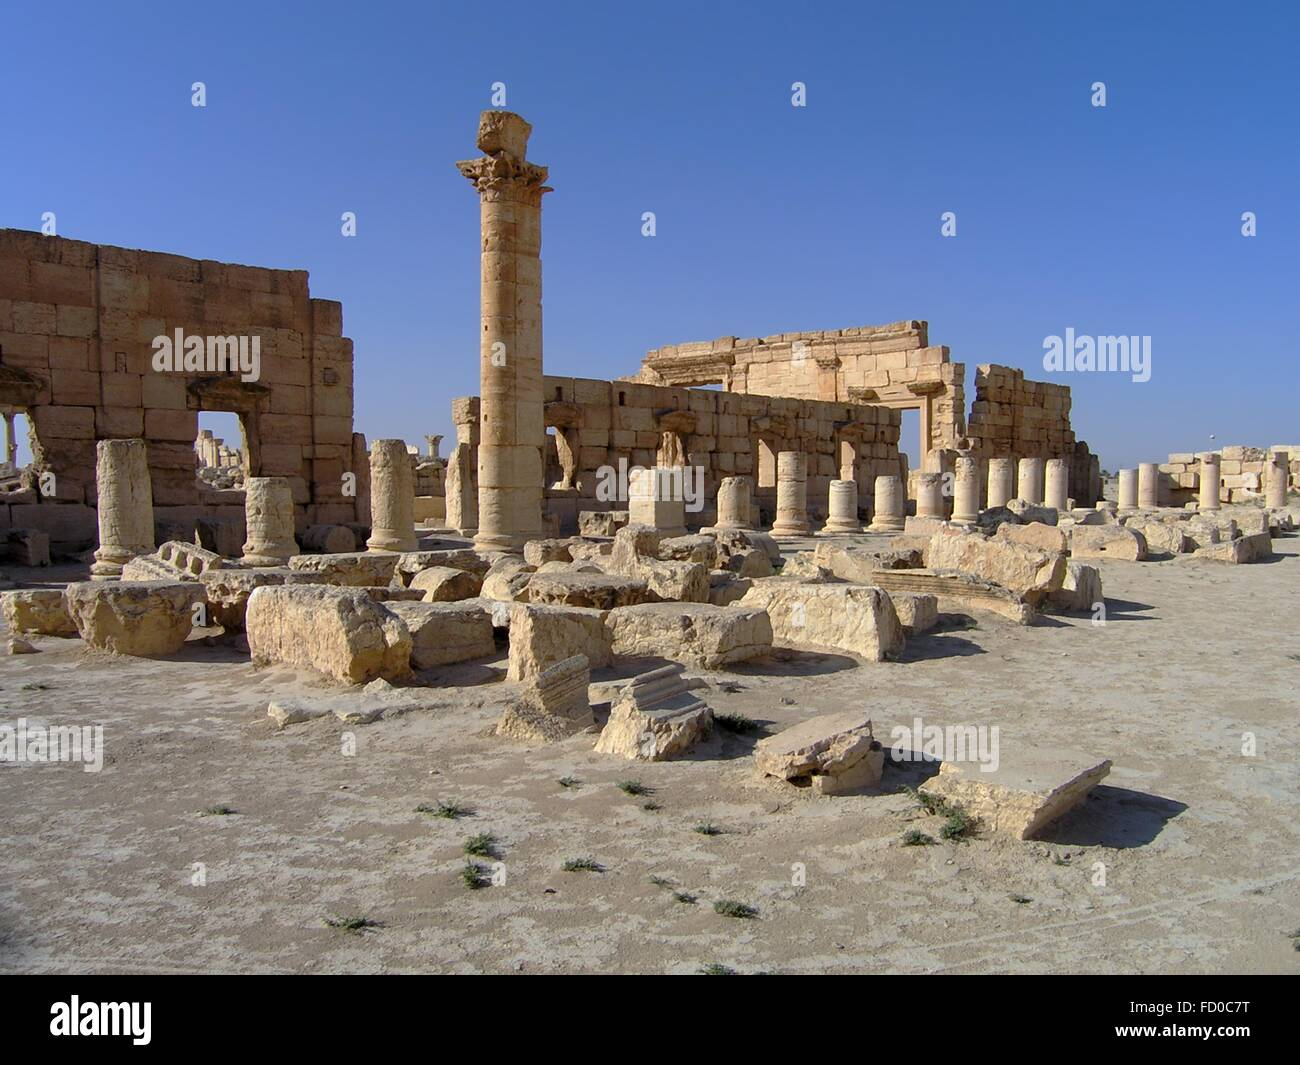 The Agora Roman Empire ruins in the ancient Semitic city of Palmyra June 16, 2006 in present-day Tadmur, Homs, Syria. Stock Photo